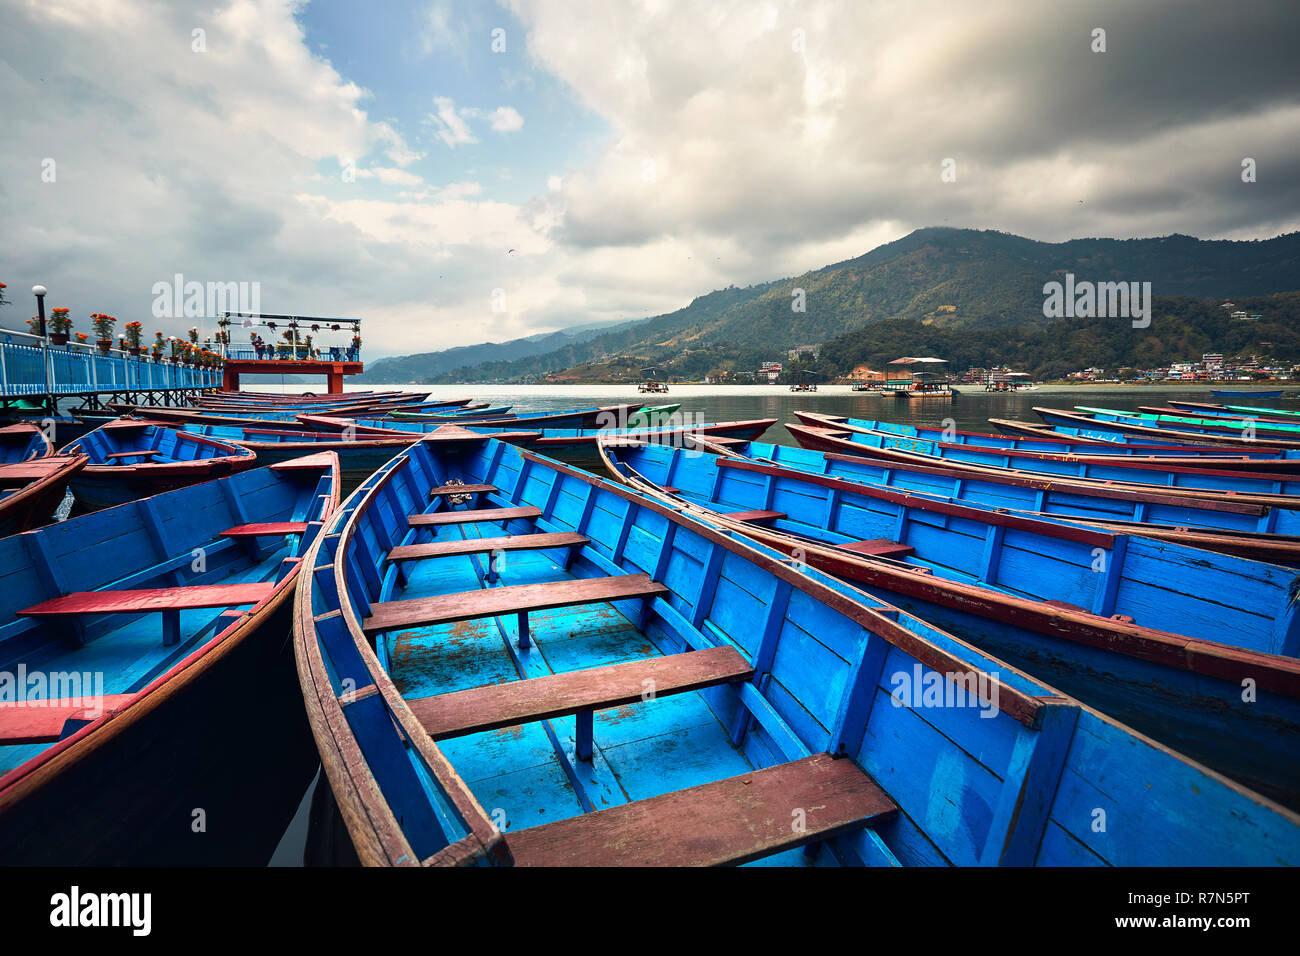 Blue boats at Phewa lake shore in Pokhara, Nepal. - Stock Image